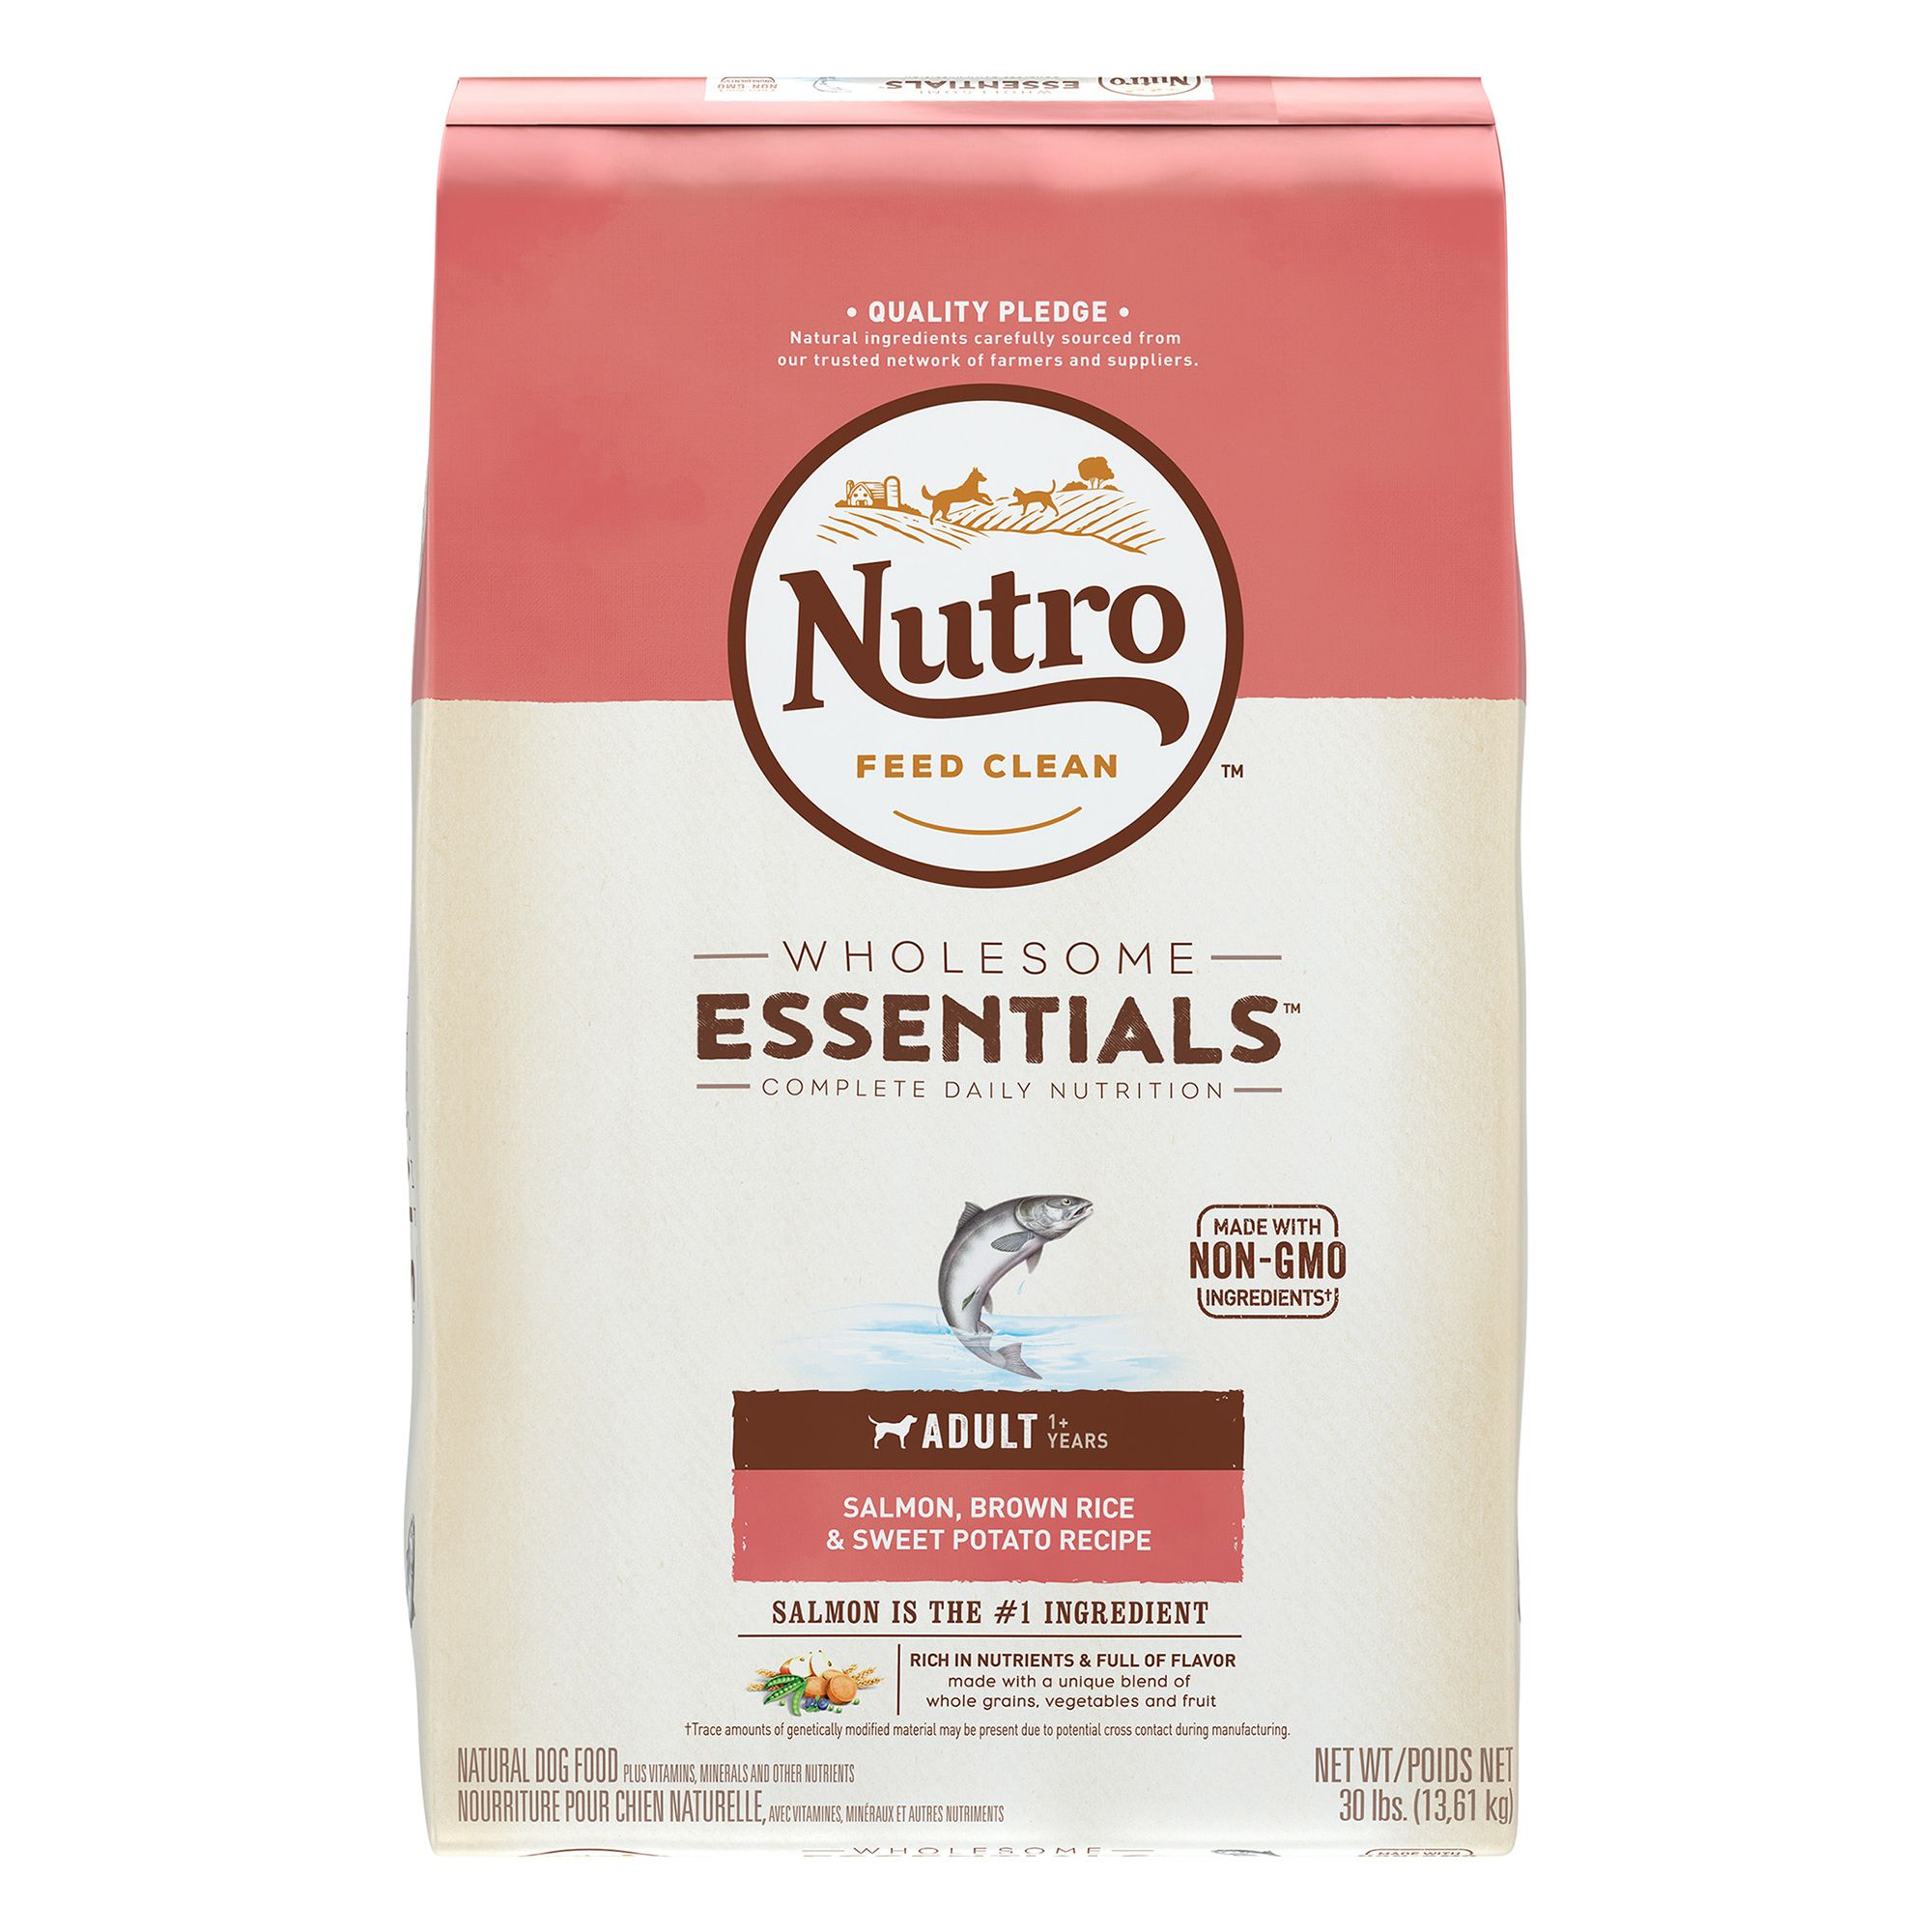 Nutro, Wholesome Essentials Adult Dog Food - Natural, Salmon, Brown Rice and Sweet Potato size: 30 Lb, Kibble, (1-7 years) 5231647